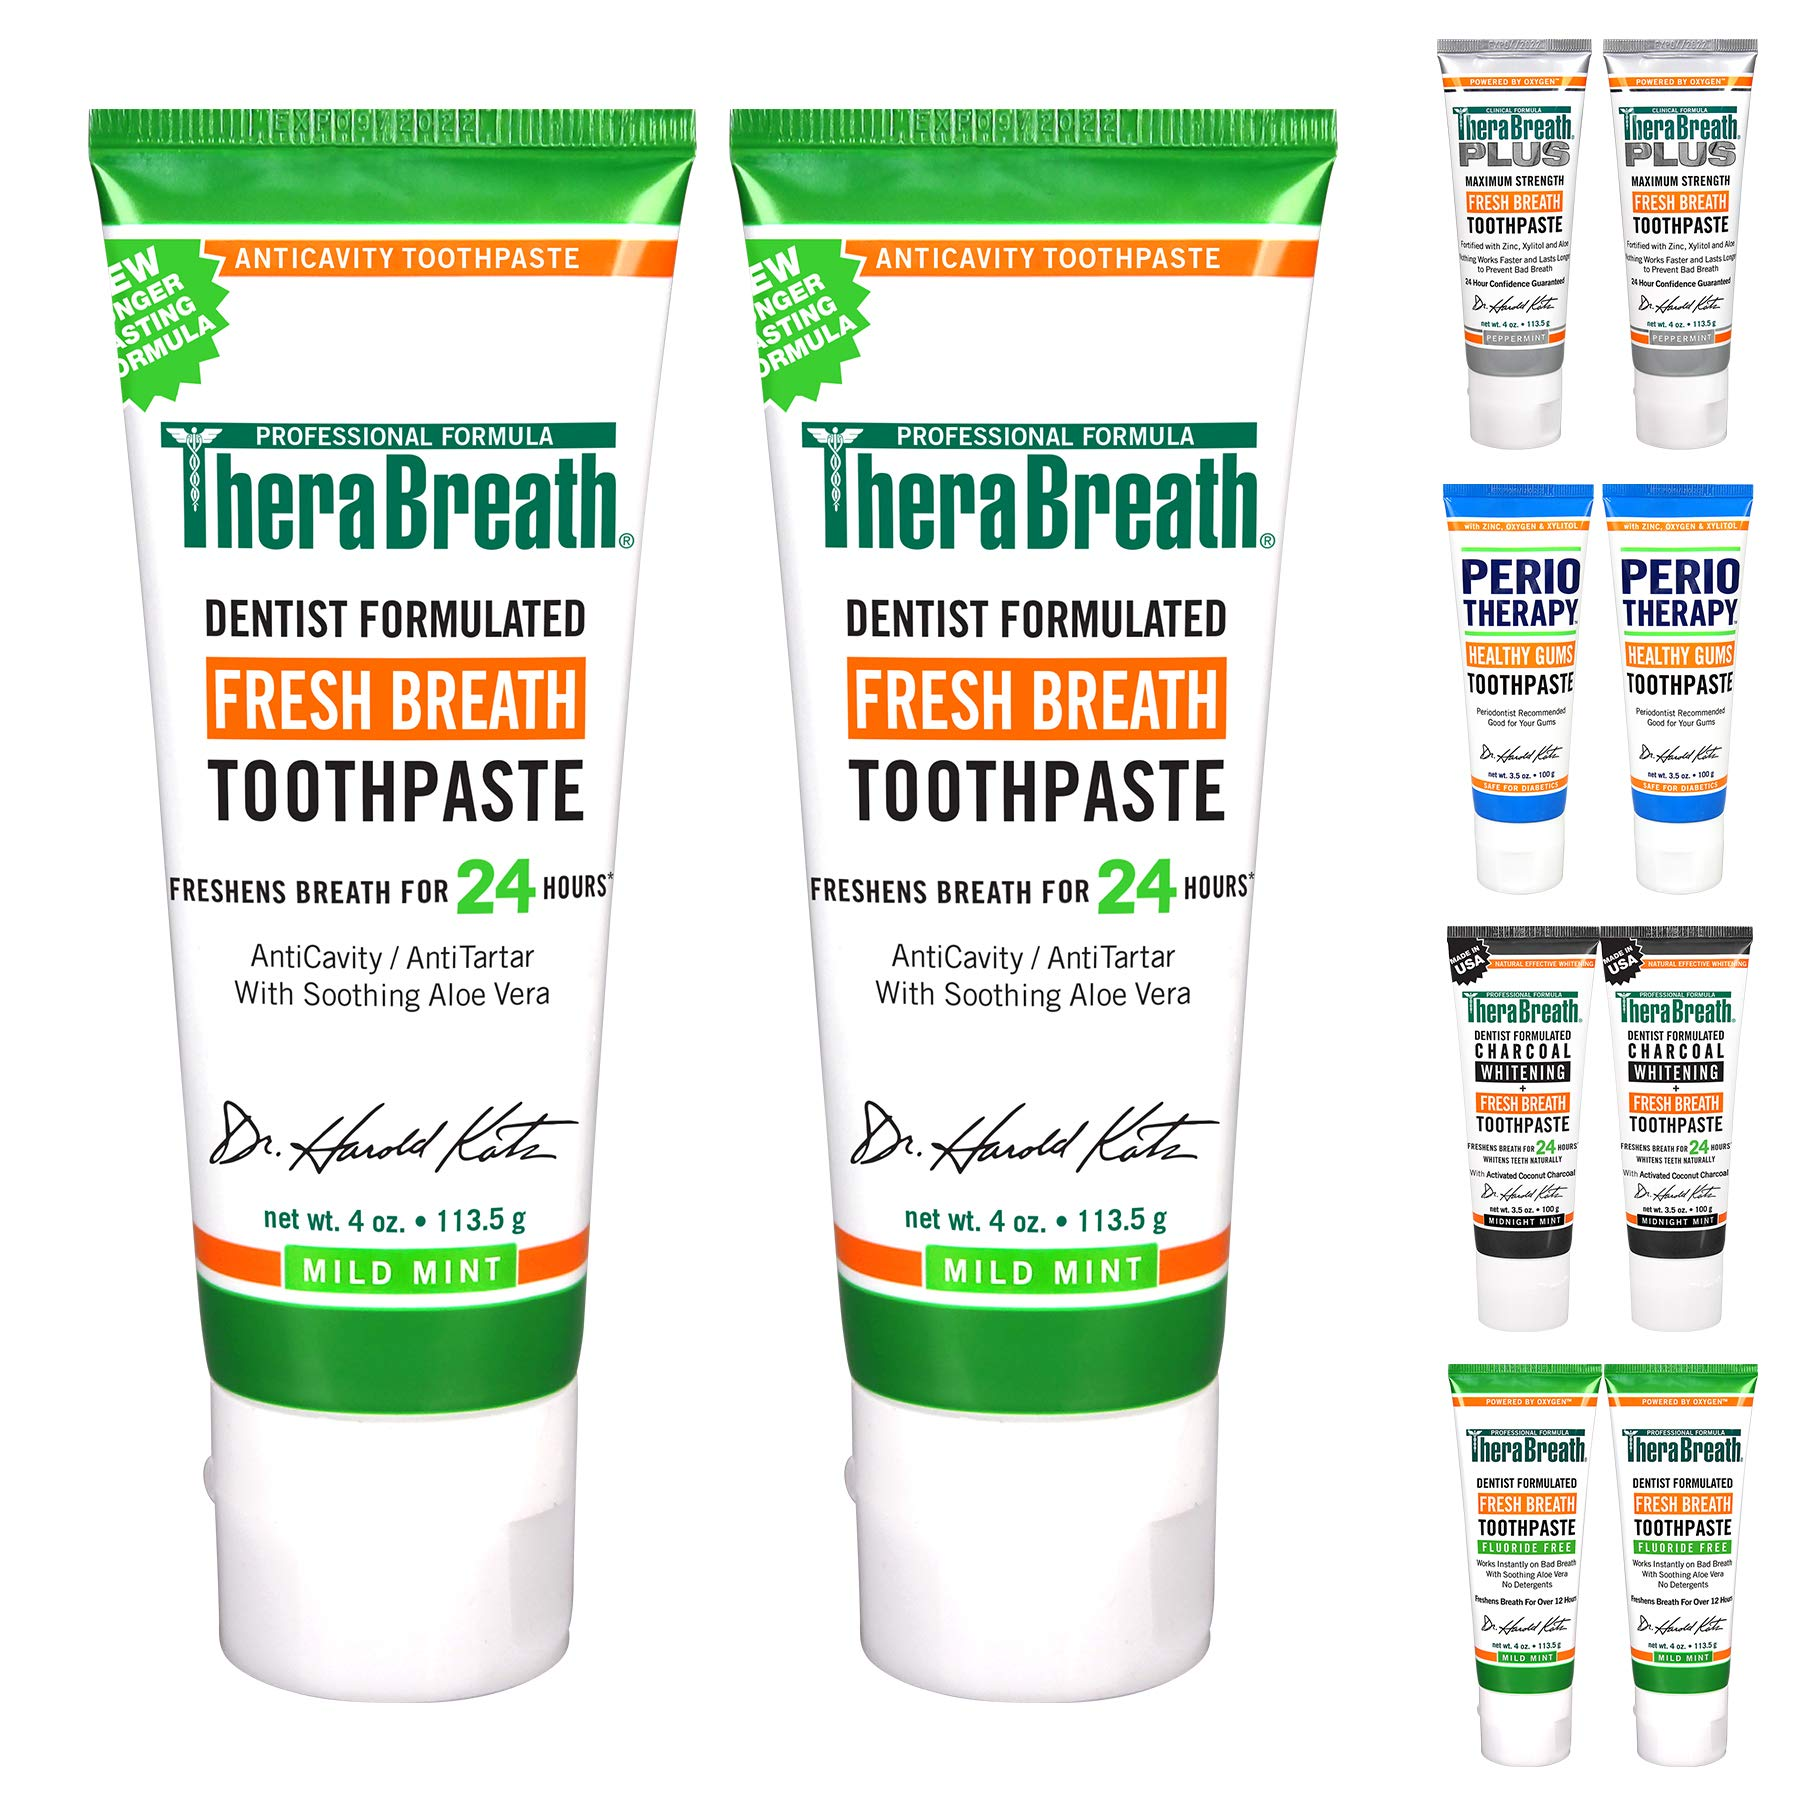 TheraBreath 24Hour Fresh Breath Toothpaste 4 oz, Regular with Fluoride, 8 Ounce, (Pack of 2)